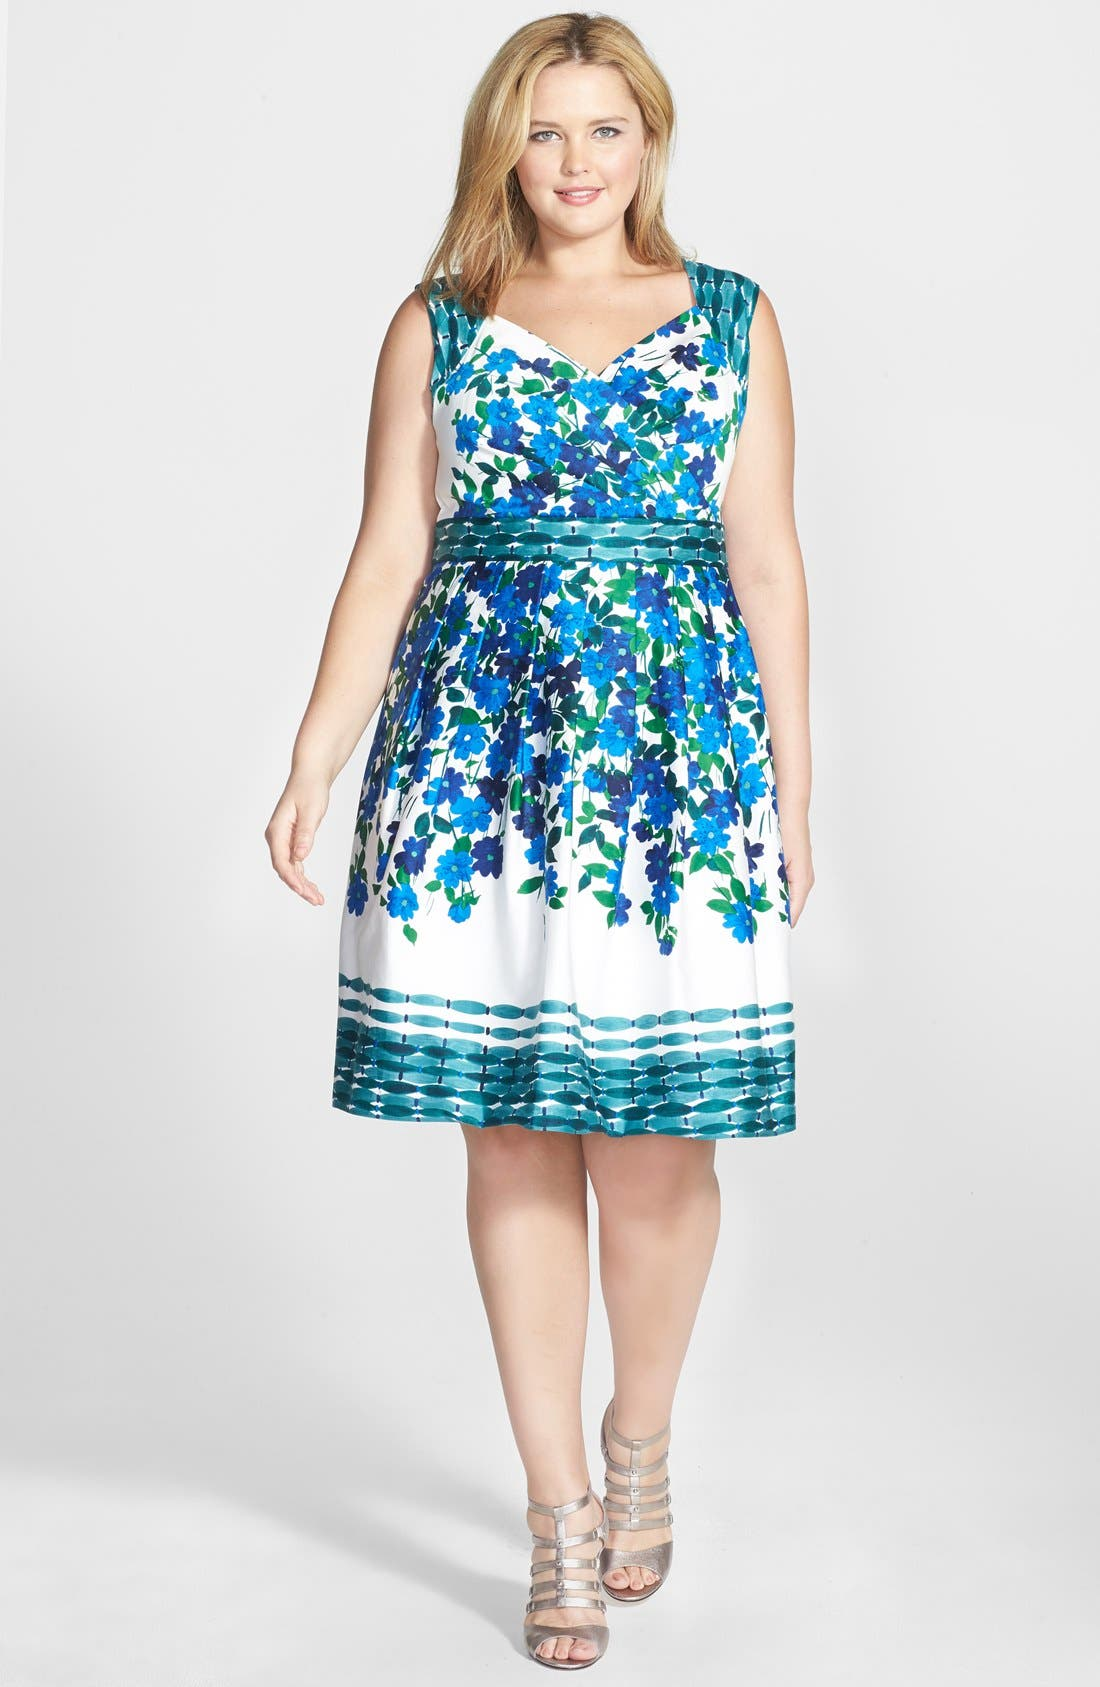 Main Image - Adrianna Papell Floral Print Stretch Cotton Fit & Flare Dress (Plus Size)